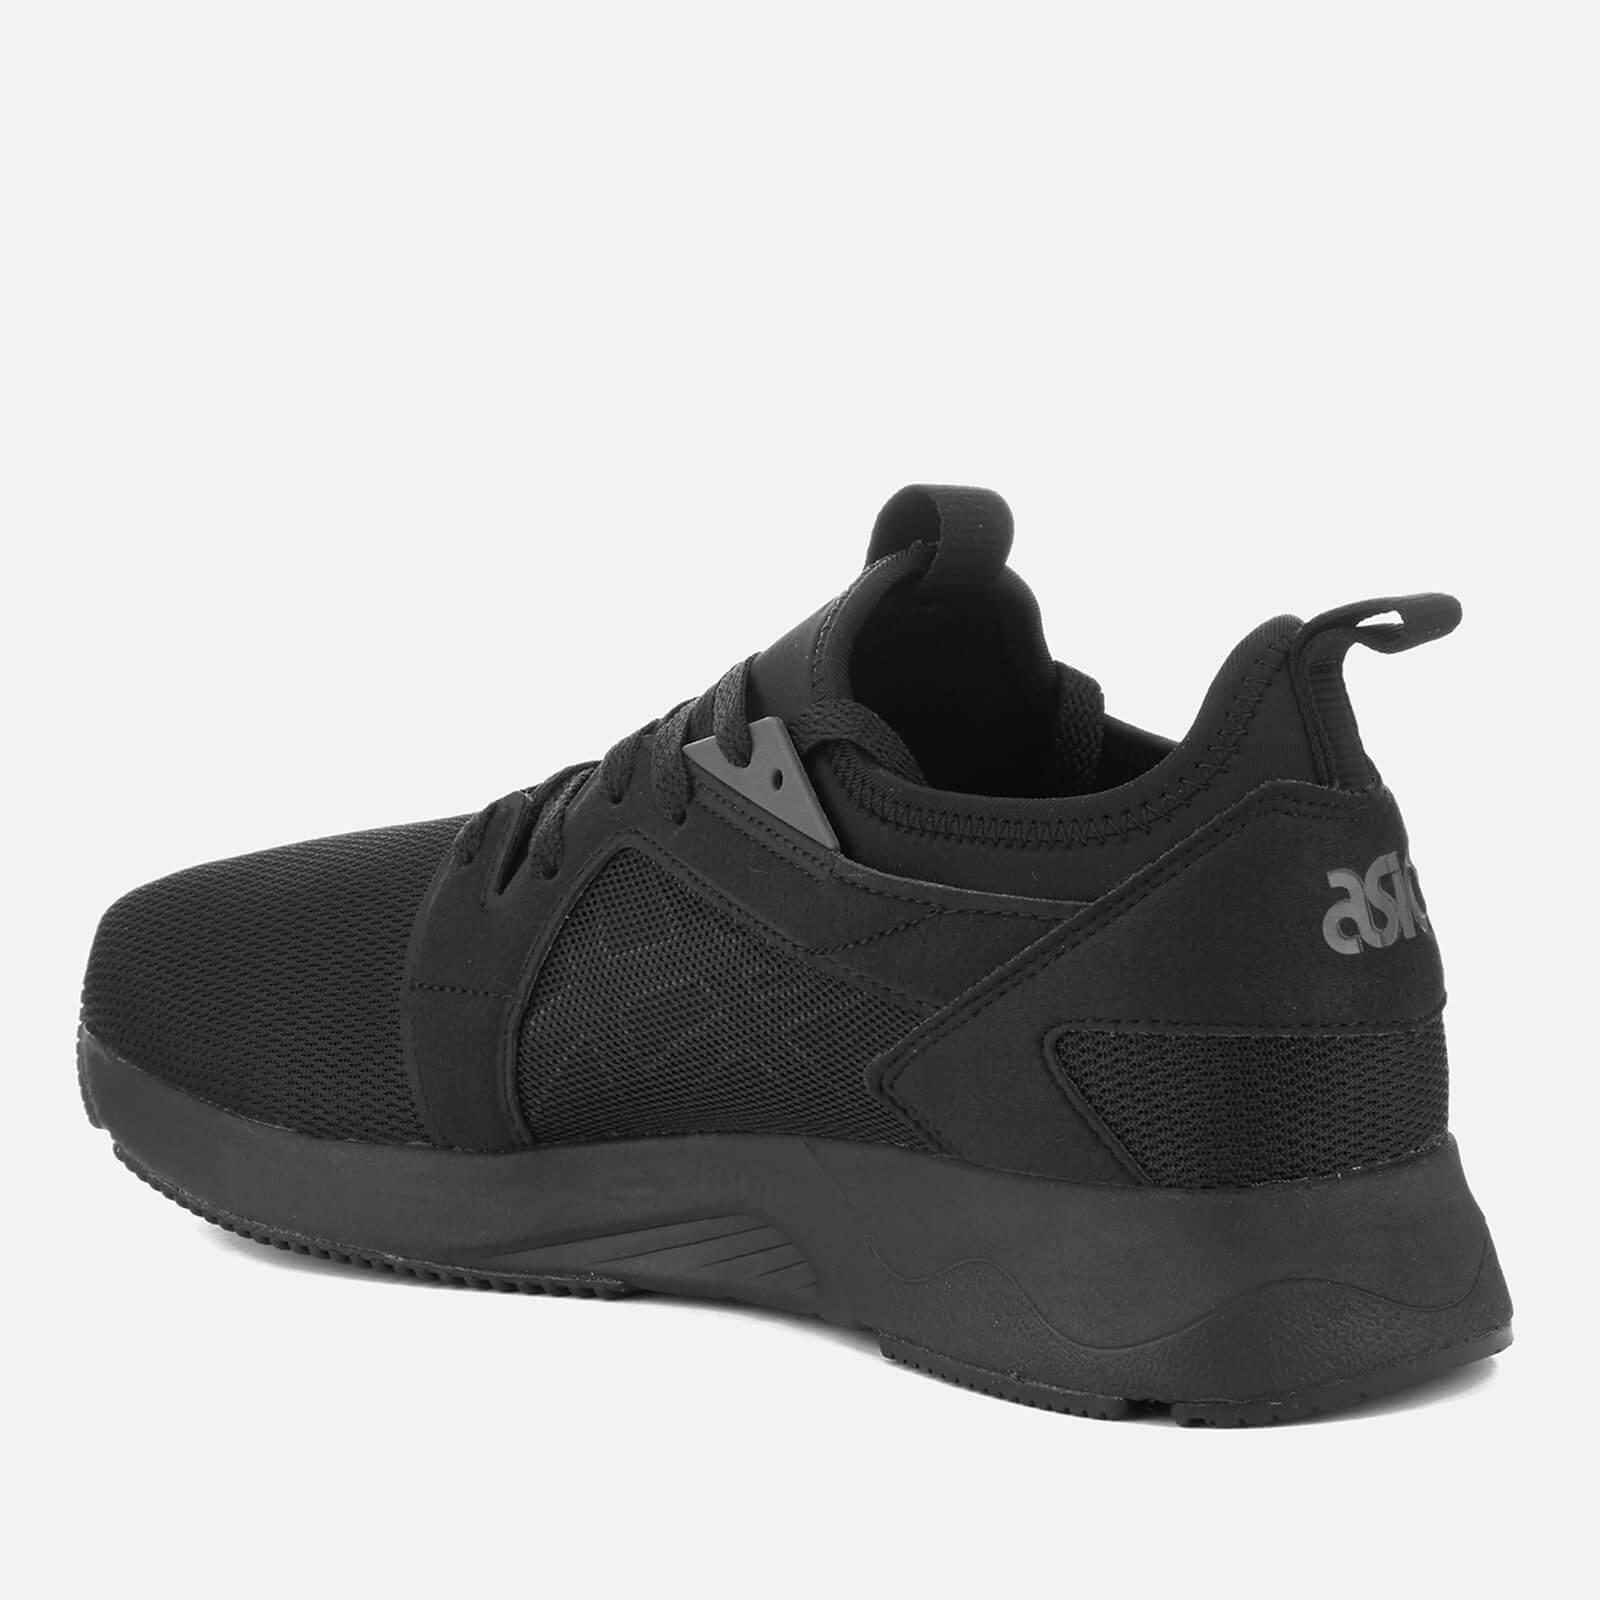 7d4eae90f7e3b ... Lyst - Asics Gel-lyte V Rb Trainers in Black for Men entire collection  0c78b ...